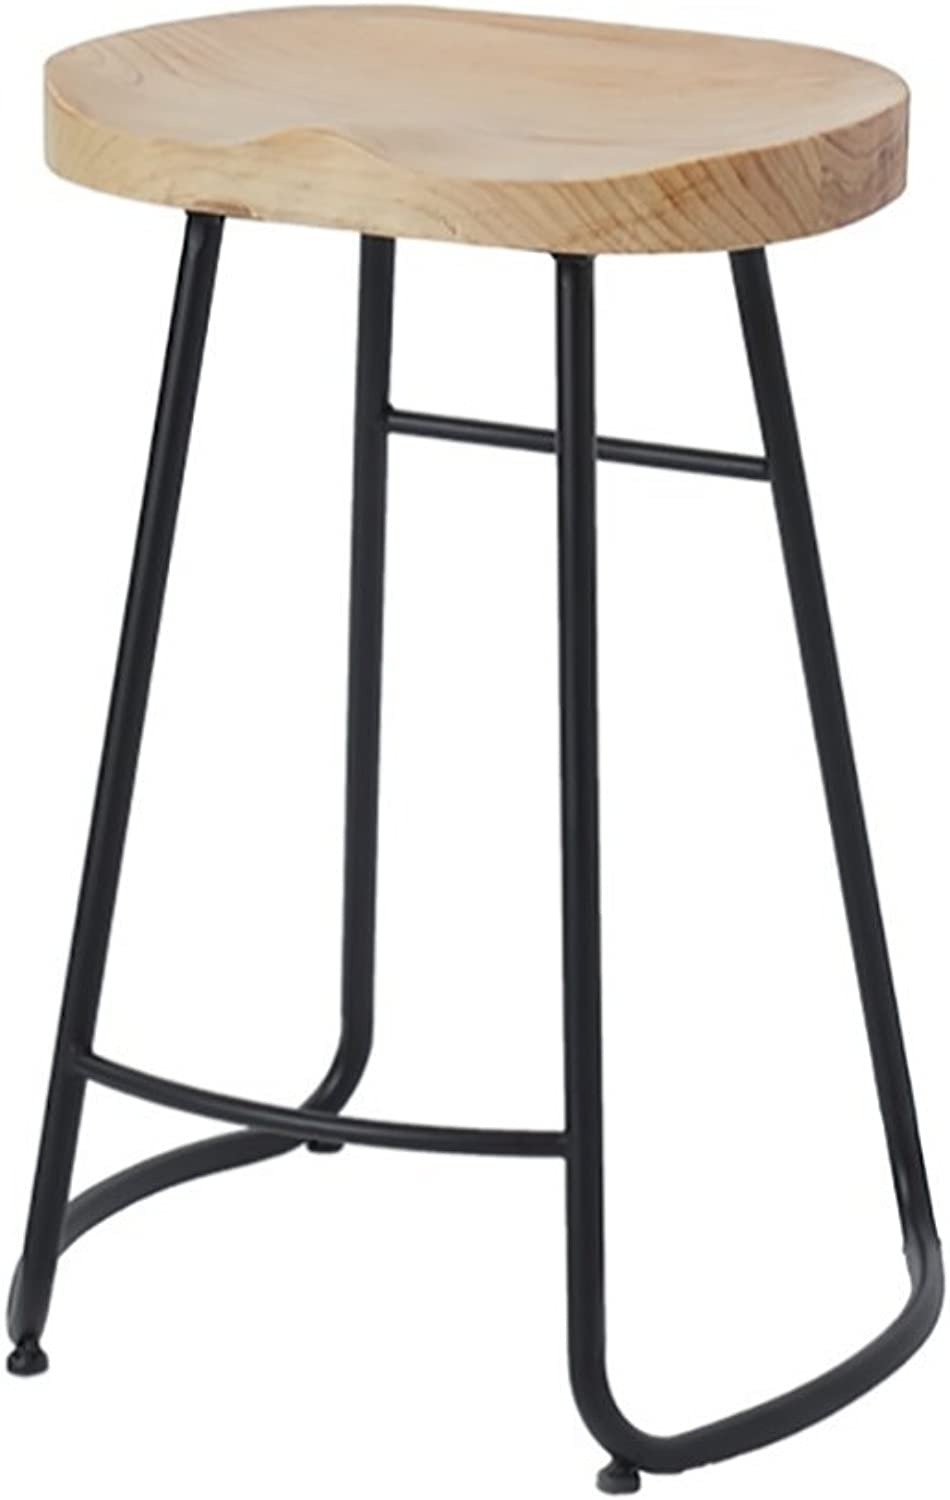 Yan Fei Modern Minimalist Solid Wood bar Stool, Nordic Fashion bar Stool, Creative Personality Coffee Shop Clothing Store high Stool, Metal Bracket, Sitting Height  45cm 65cm 75cm Comfortable Stools